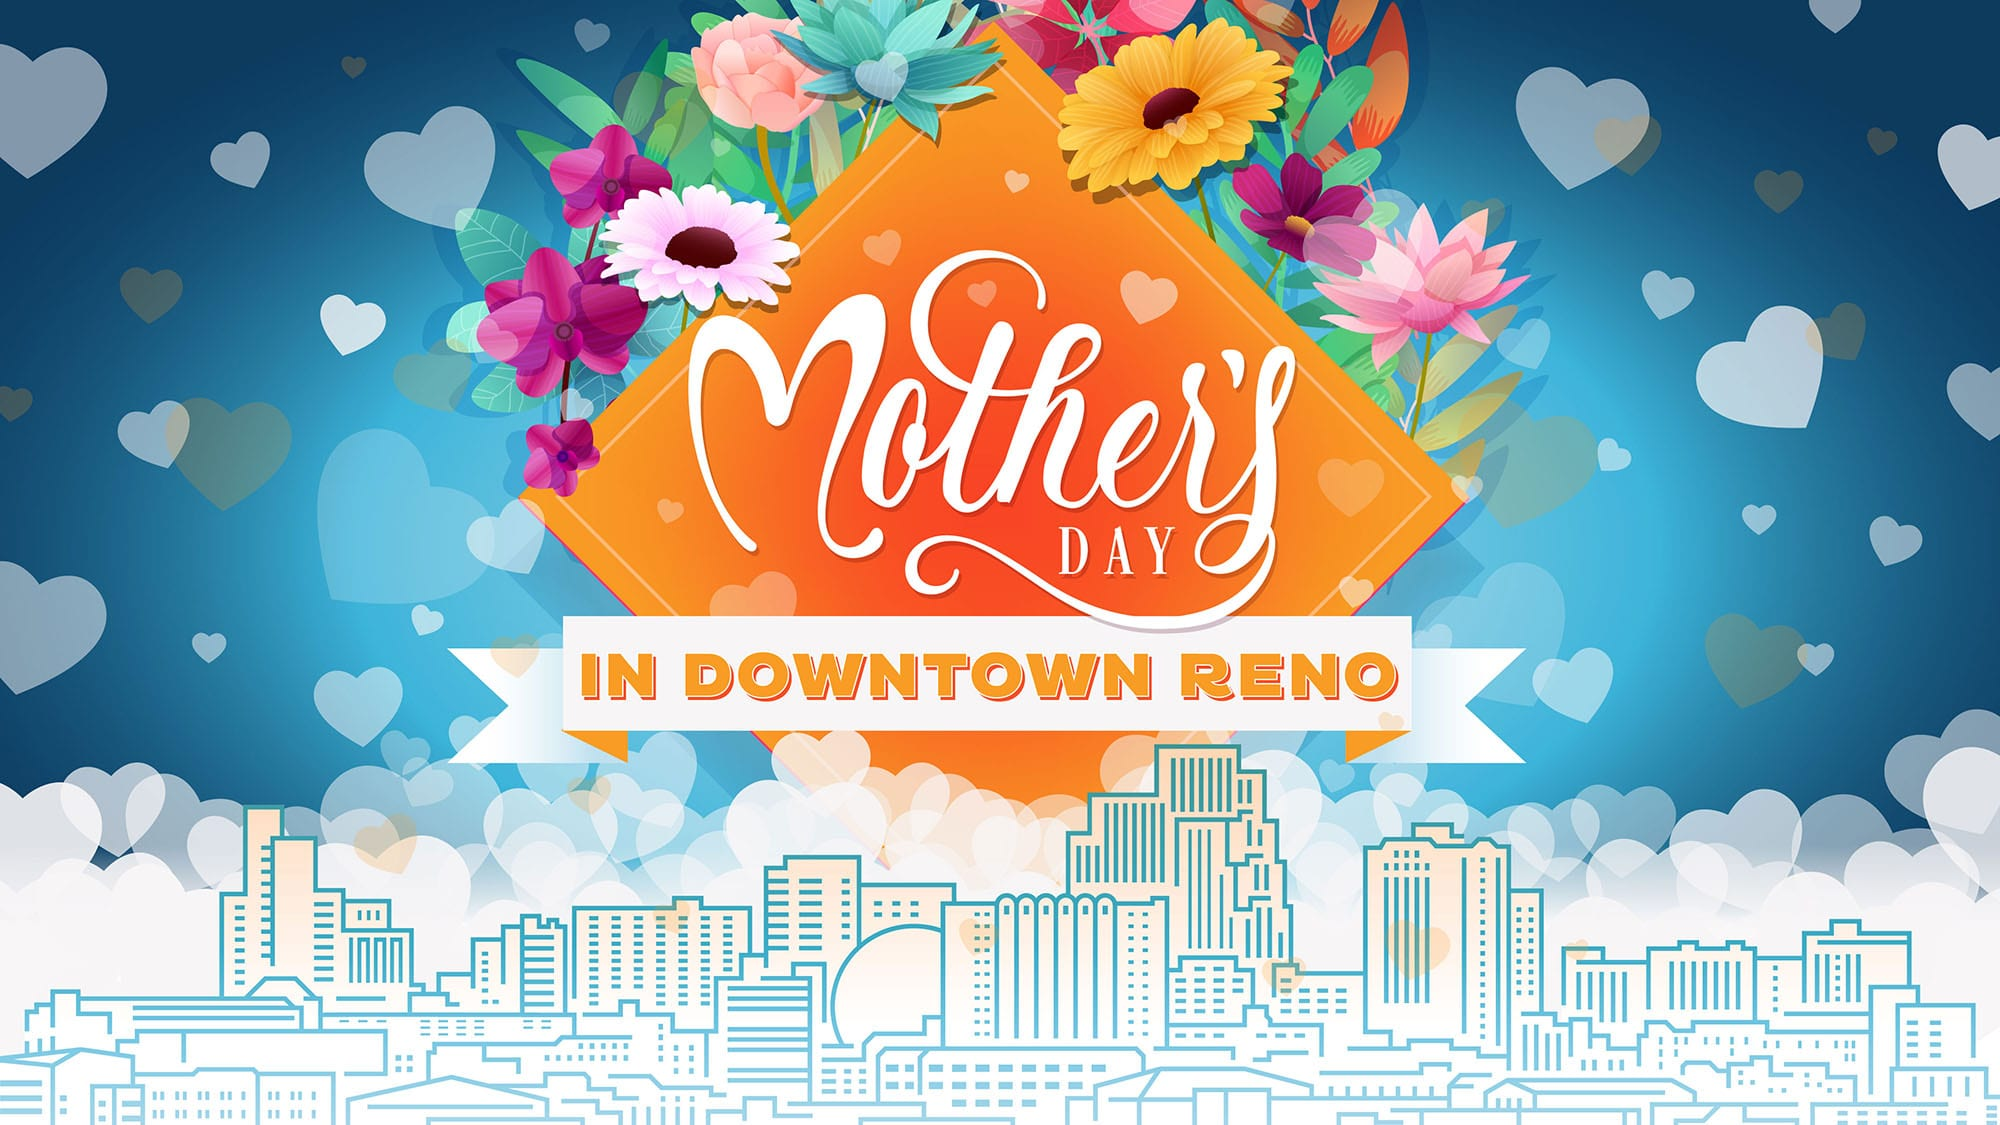 Mothers Day downtown Reno